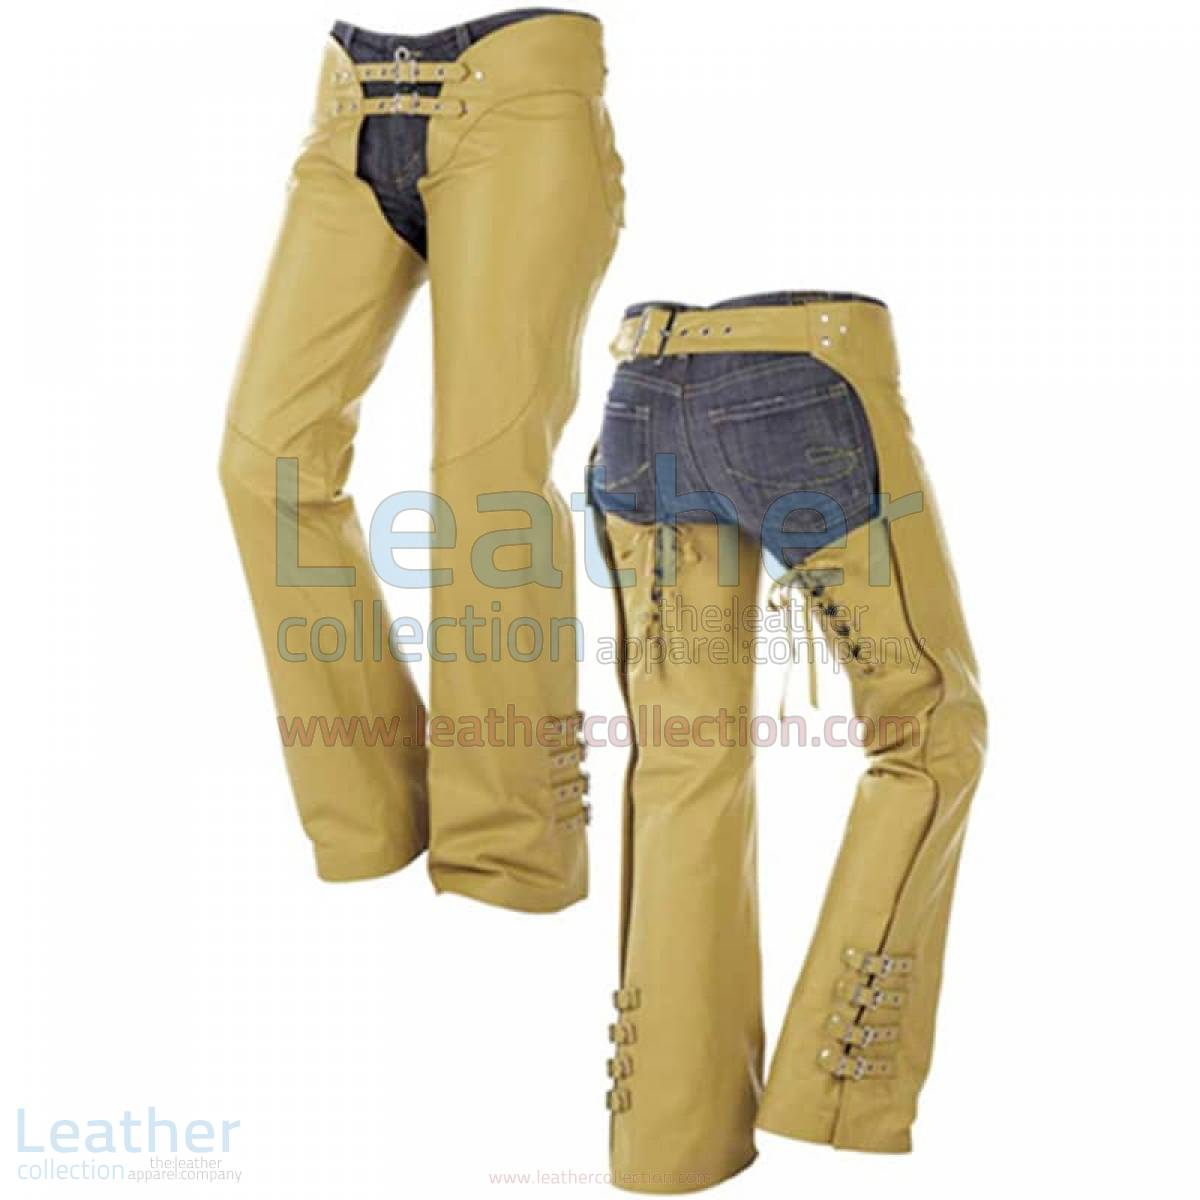 Buckles on Legs Leather Cowboy Chaps